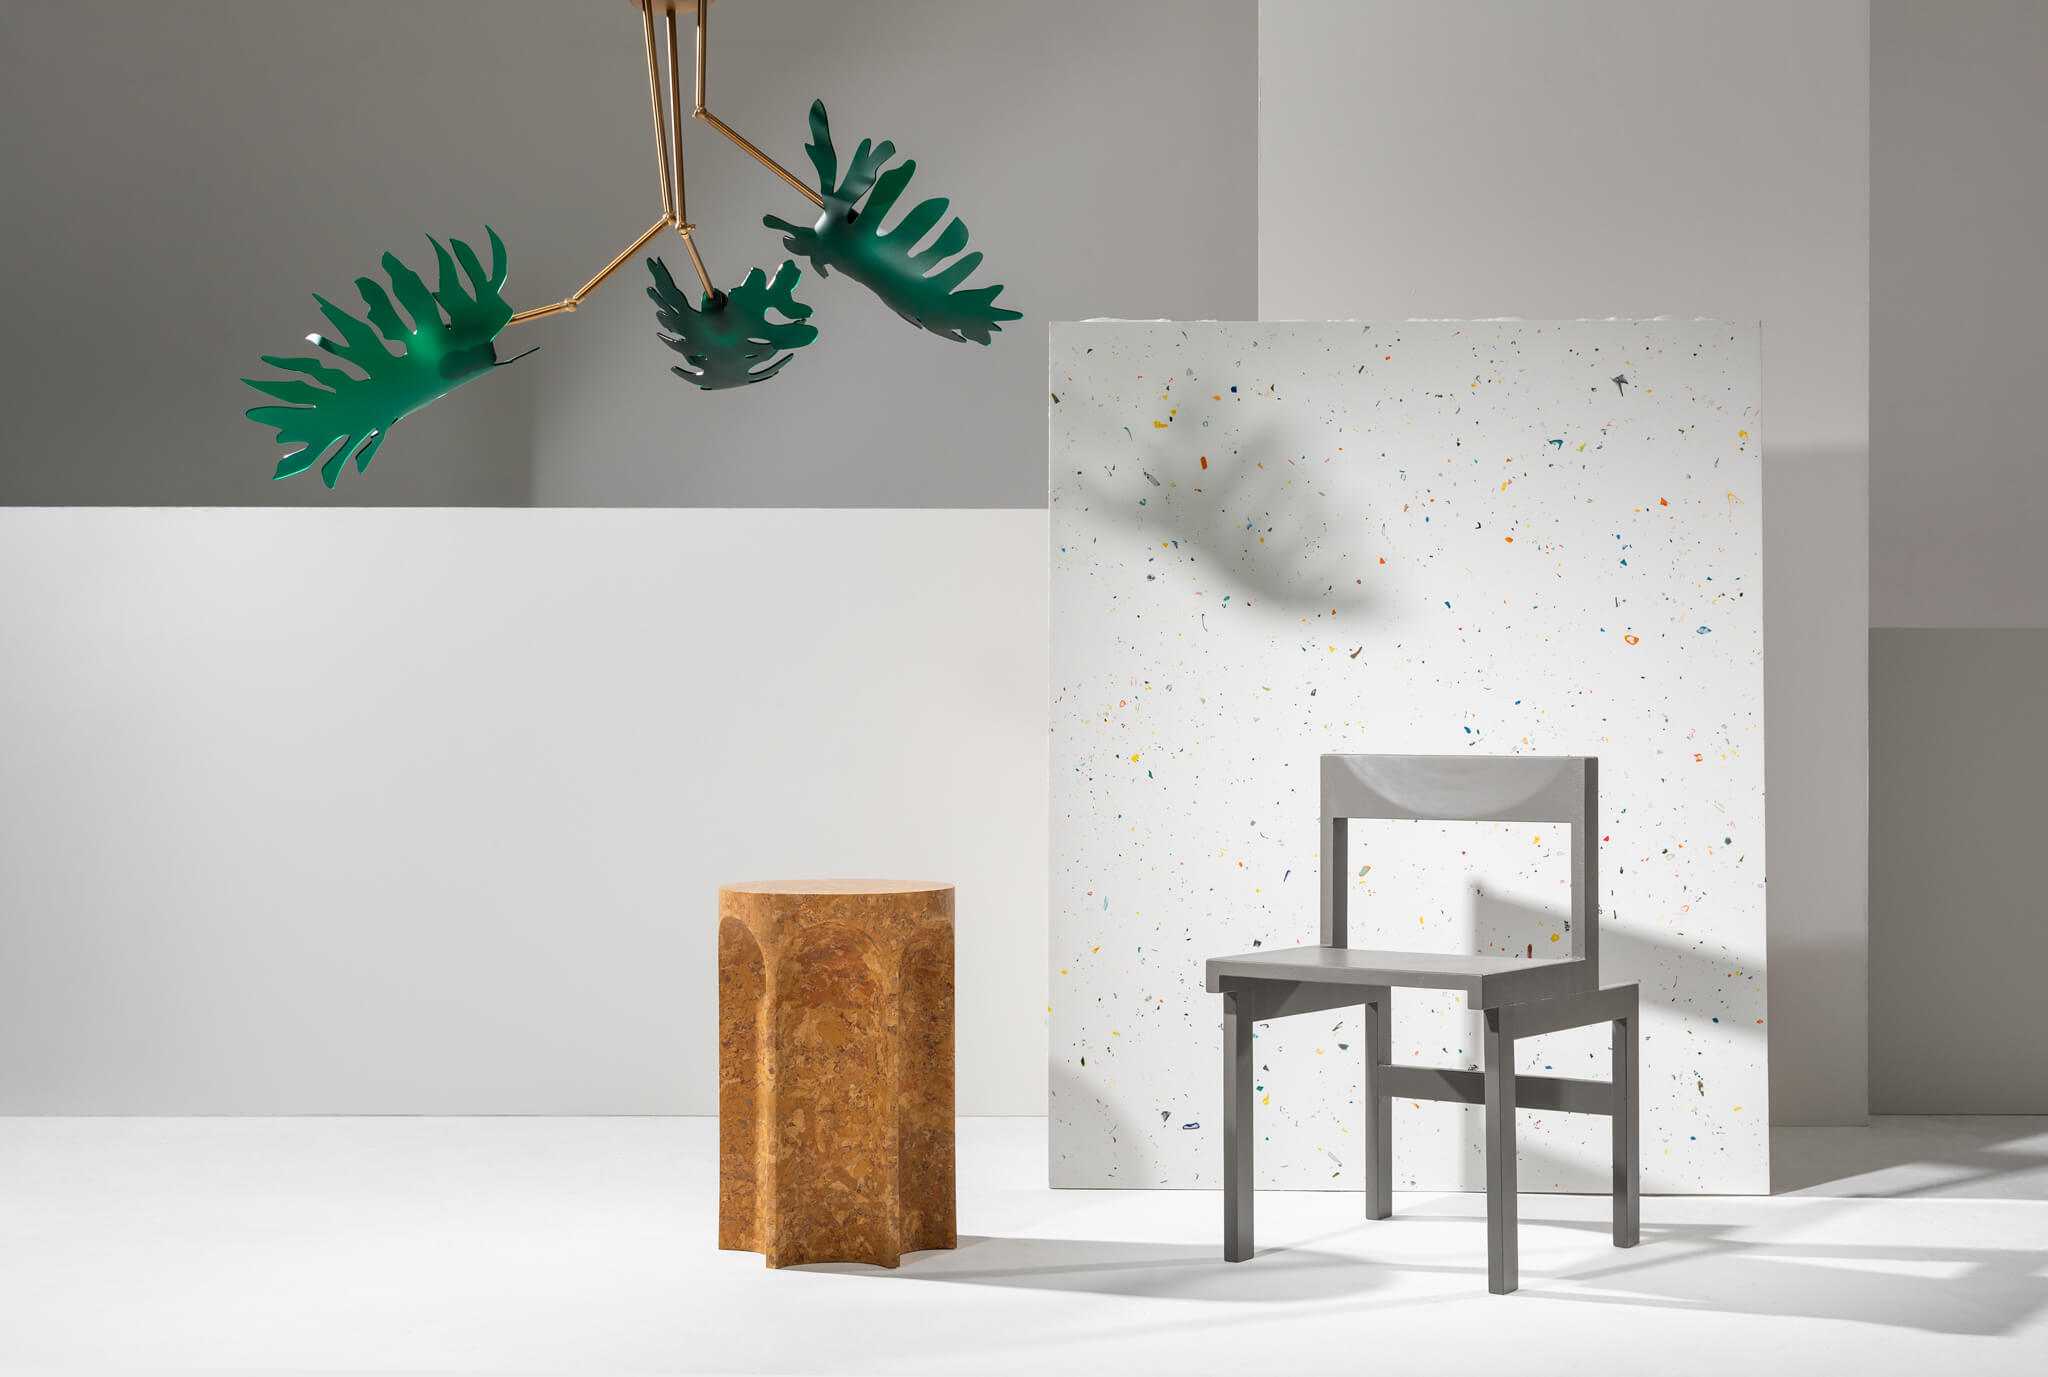 A chandelier with 'monstera leaves' (Urpflanze) hangs from the ceiling. A fluted marble-effect, mustard-coloured cylindrical side table (Chalk Plaster); a de stijl inspired dining chair (Mirrl); and a sheet of white surface material speckled with colourful inclusions (Mirrl) are all arranged in front of a minimalist backdrop of white boards.